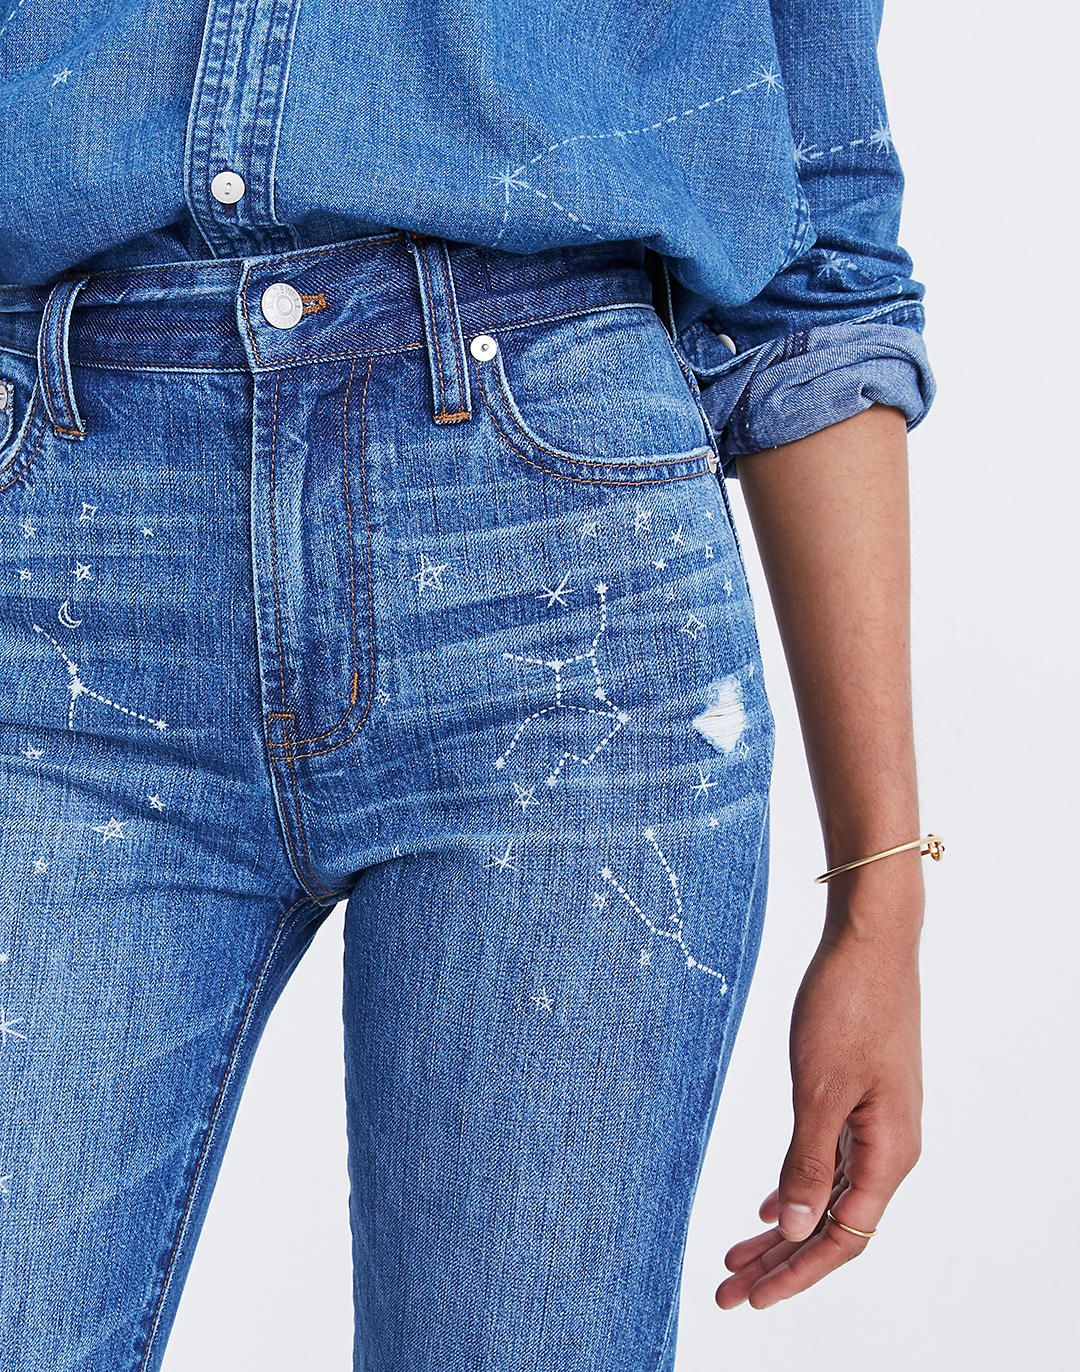 The Perfect Vintage Jean: Comet Edition